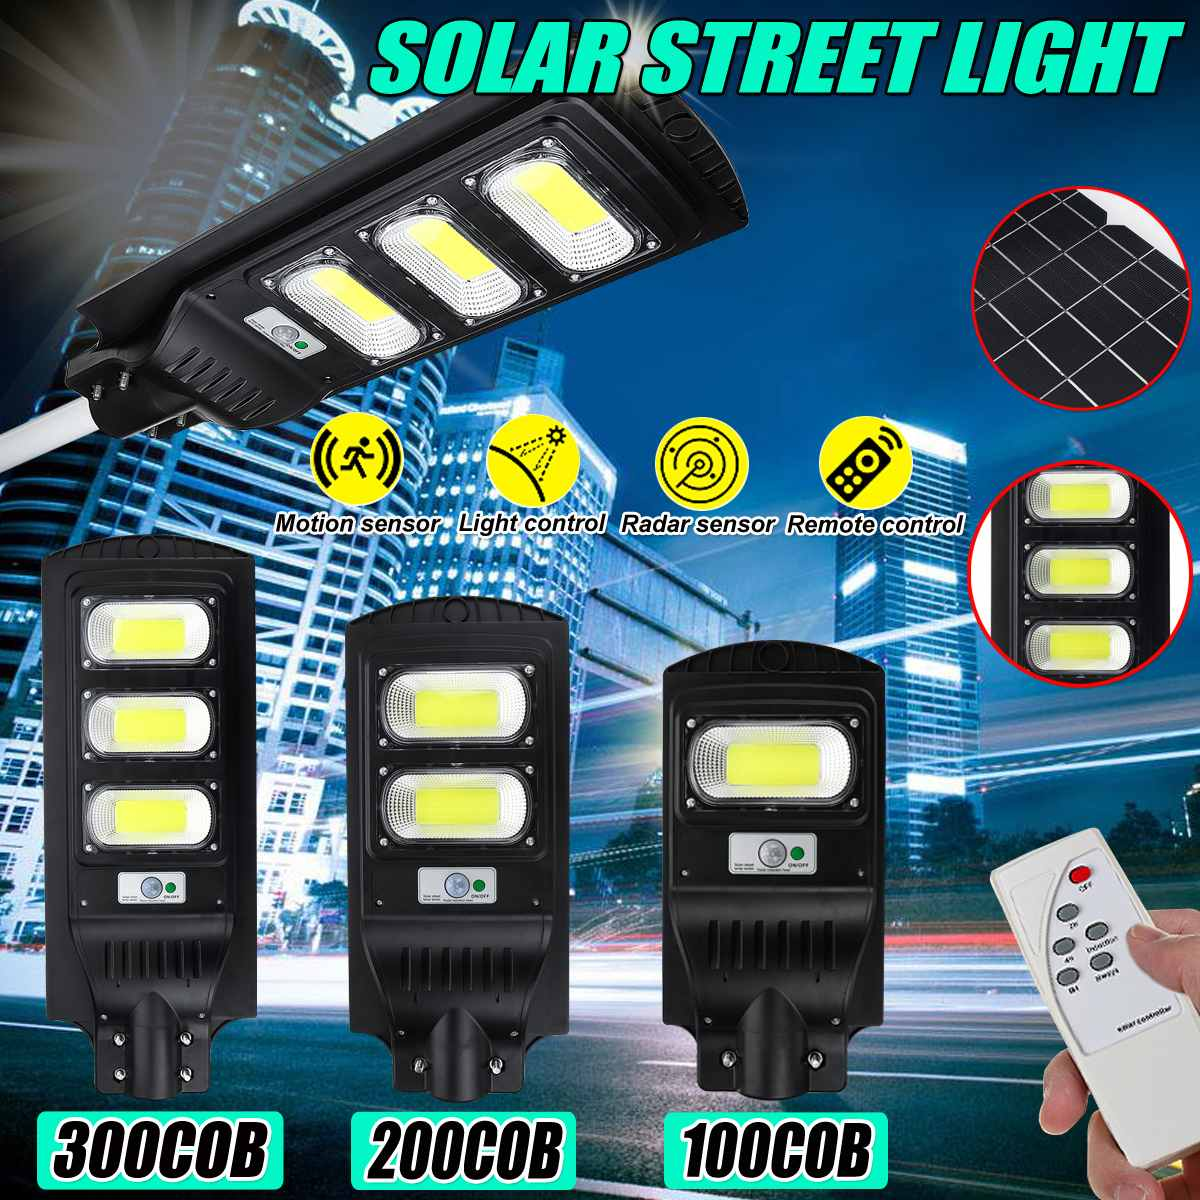 200/150/100W Solar Street Light PIR Motion Sensor LED Outdoor Garden Wall Lamp with Remote Controller for Villas and Garden Yard